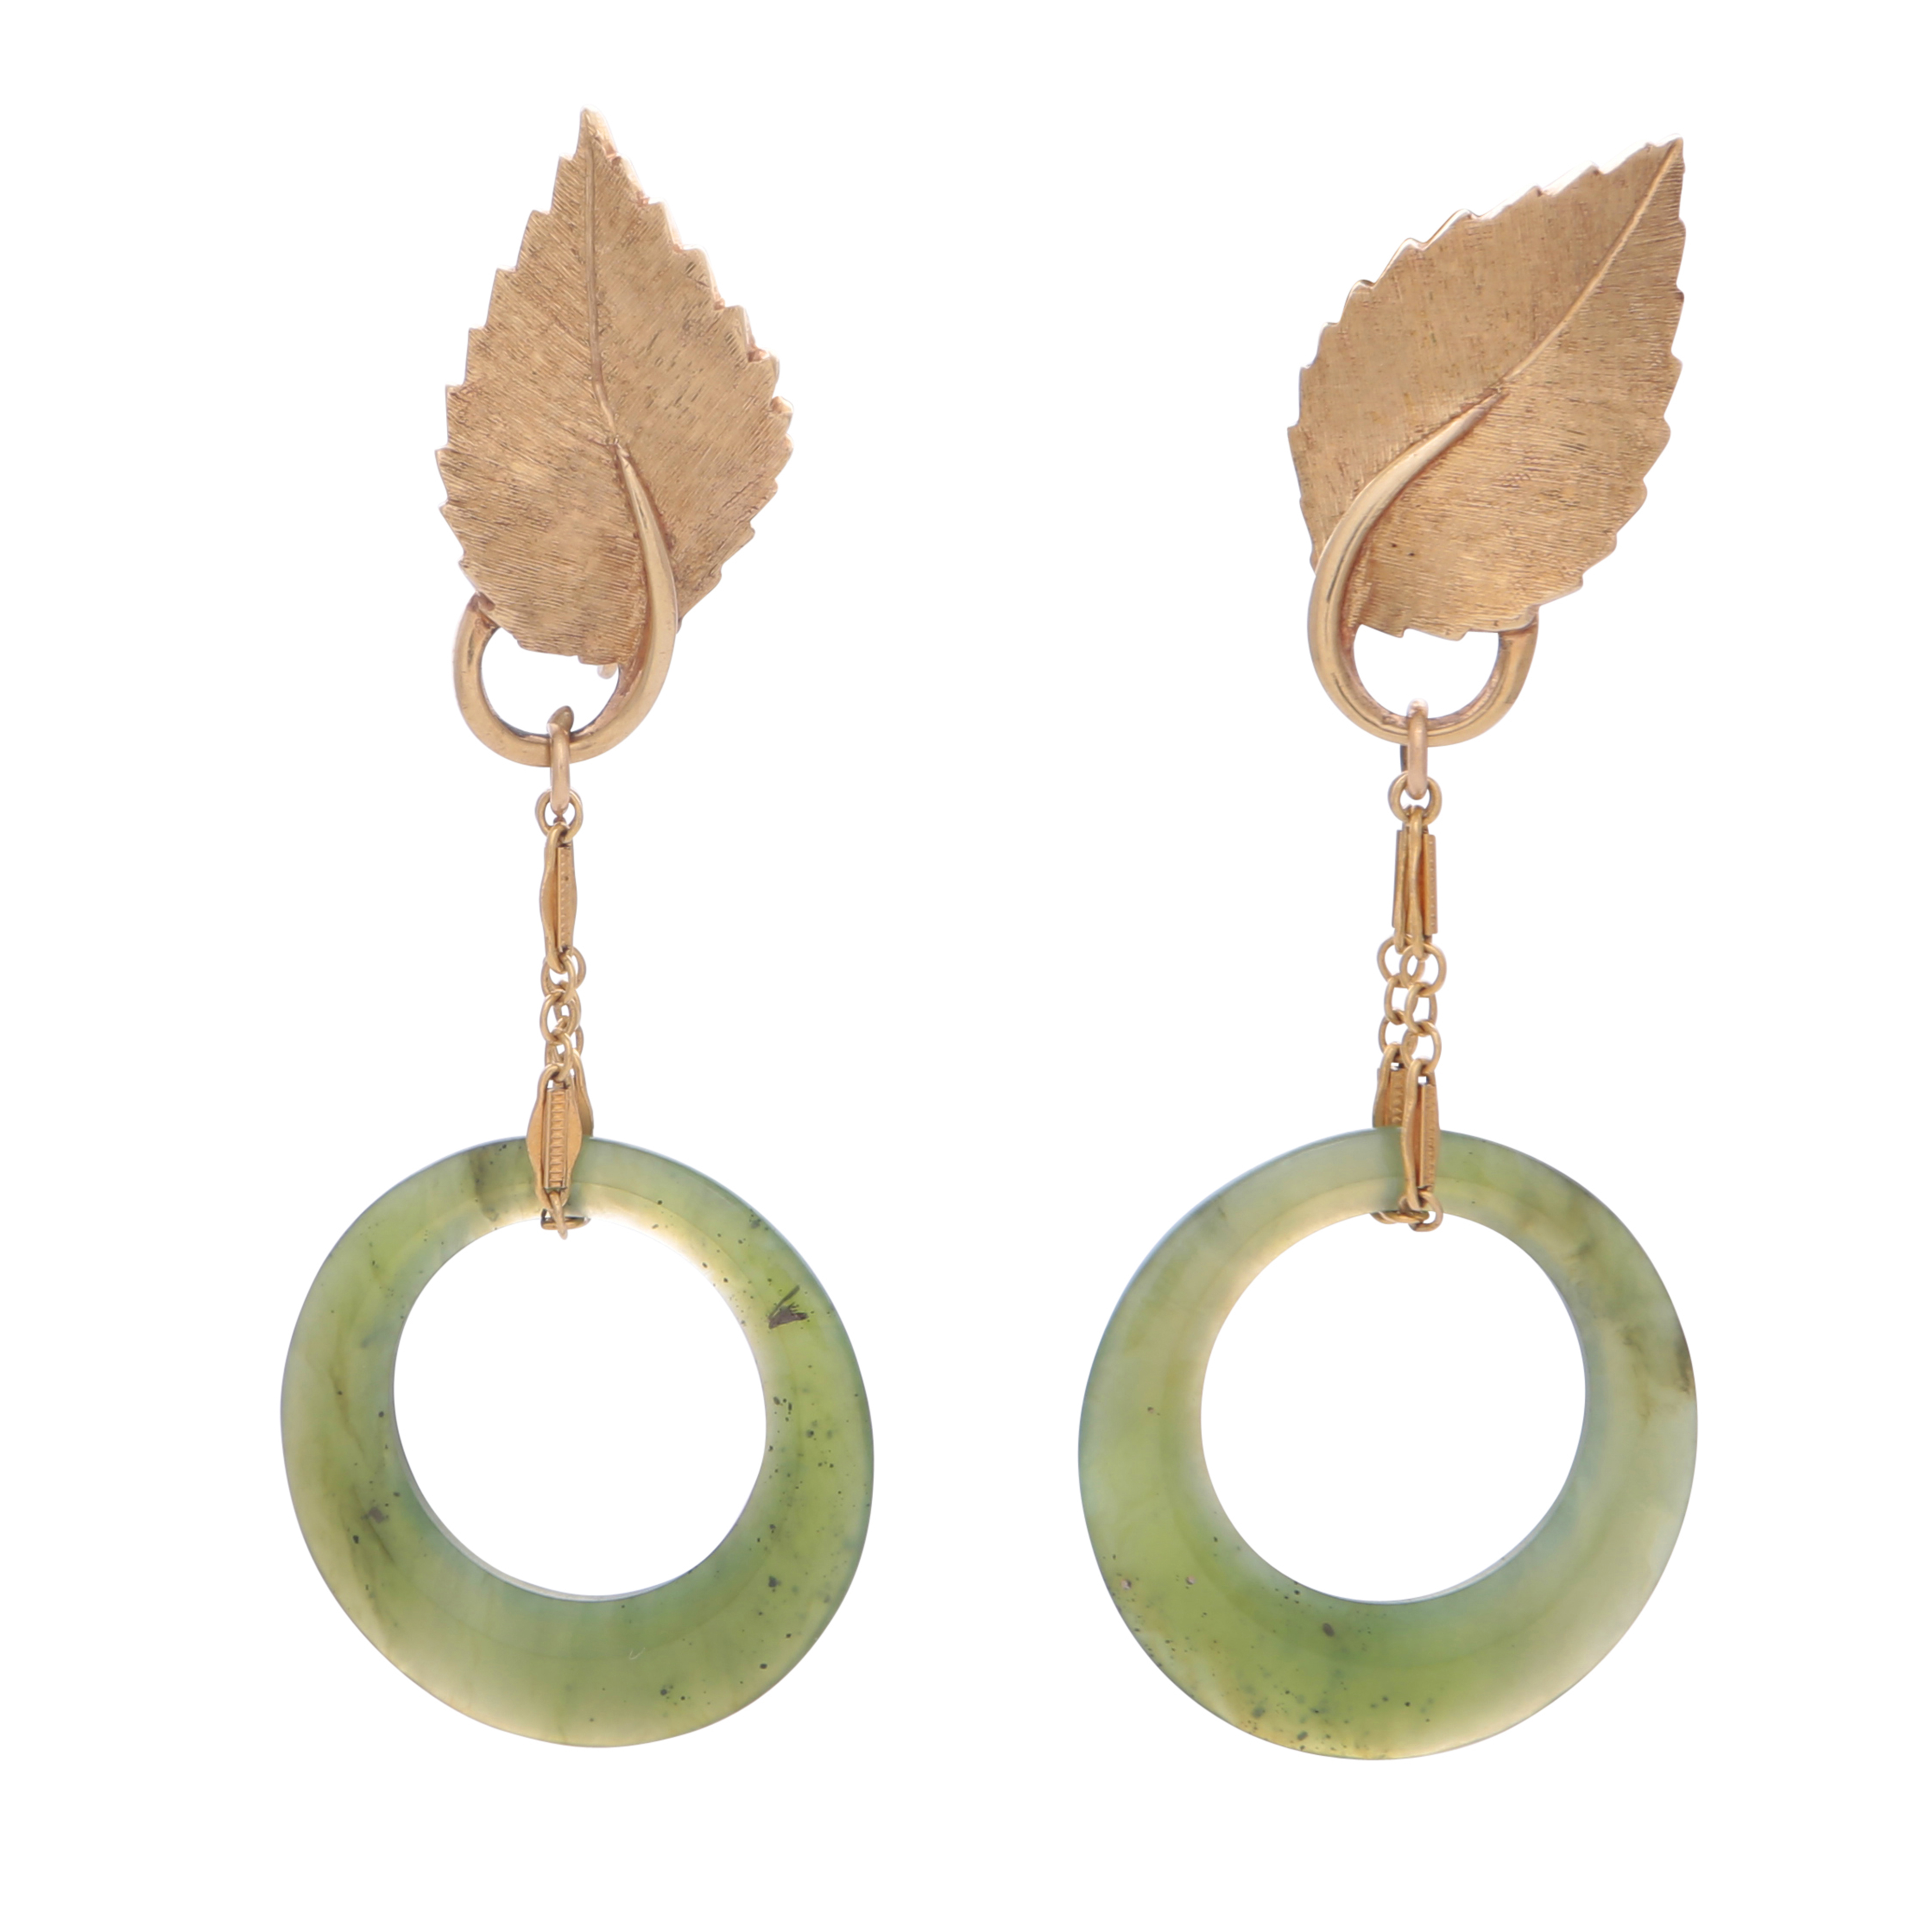 Los 179 - A pair of jade pendant clip earrings in 14ct yellow gold, designed as two hoops of green nephrite